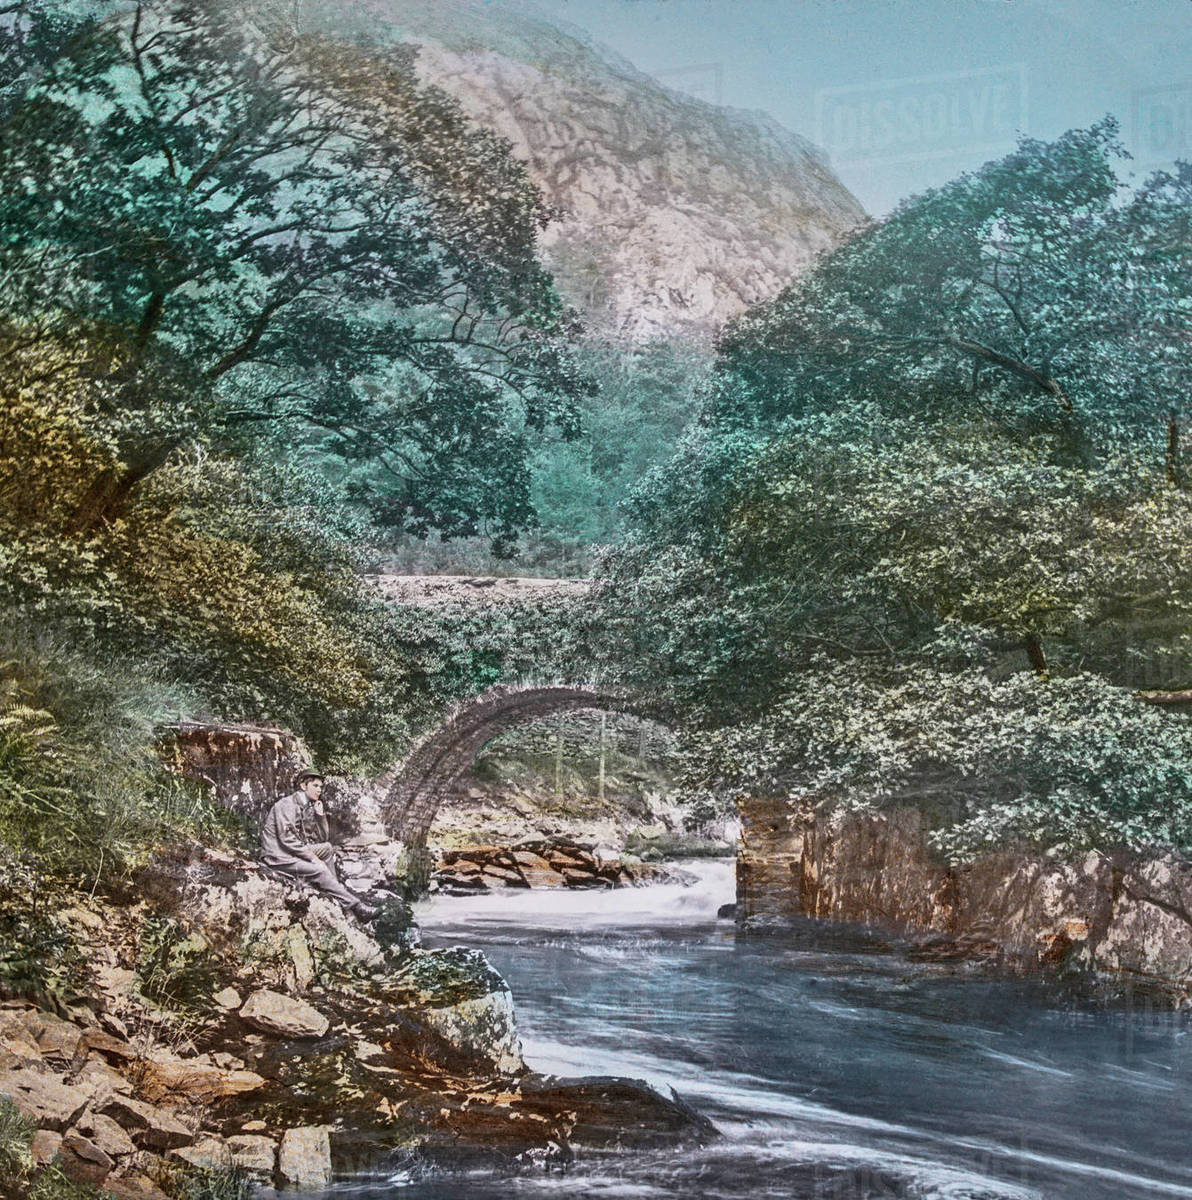 37 Tour Magic Lantern Slide Circa 1900 Hand Coloured Created In 1887 A Tour Of North Wales 37 Pont Aberglaslyn The Old Bridge Itself This Is A Picture